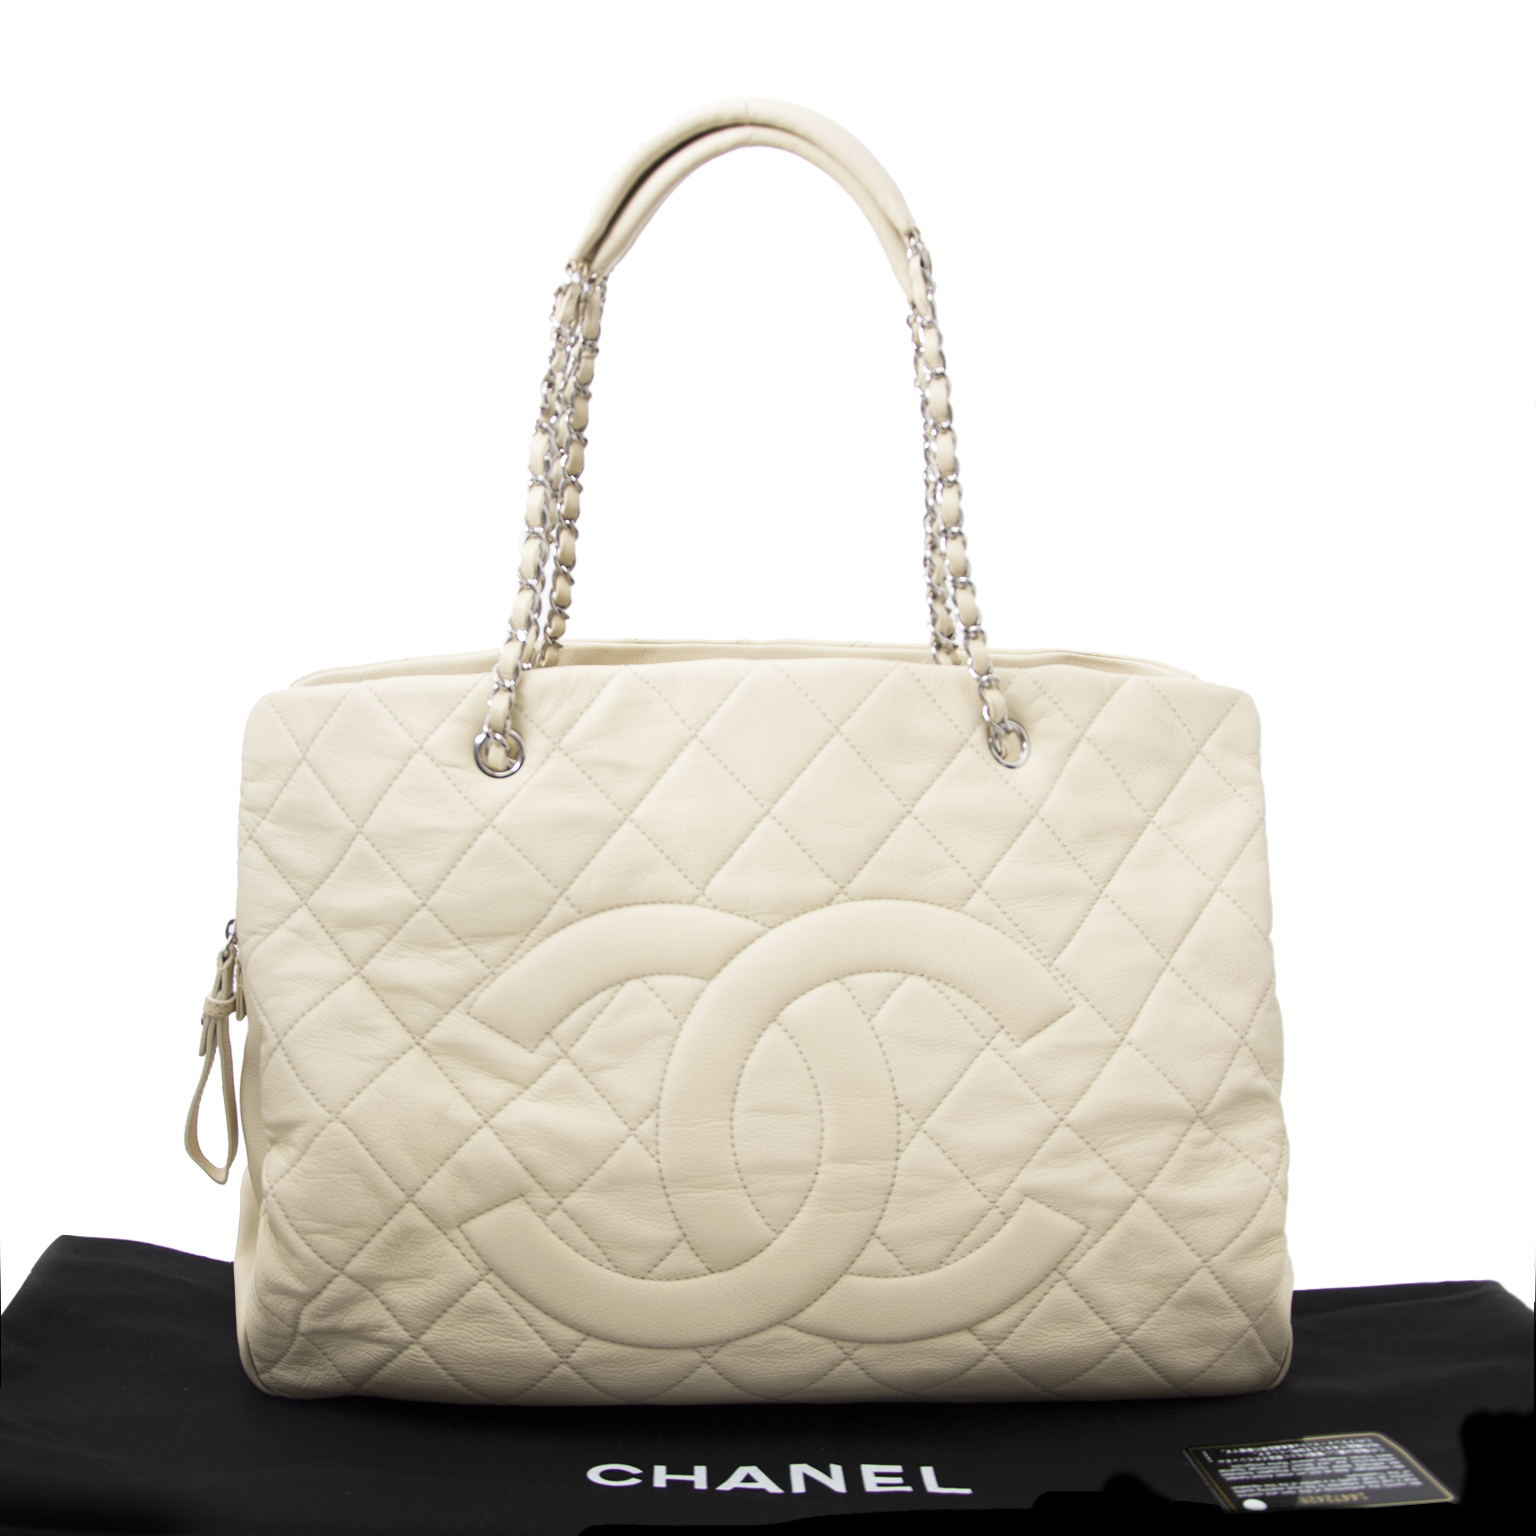 Chanel GST now safe and secure available on www.labellov.com at the best price.